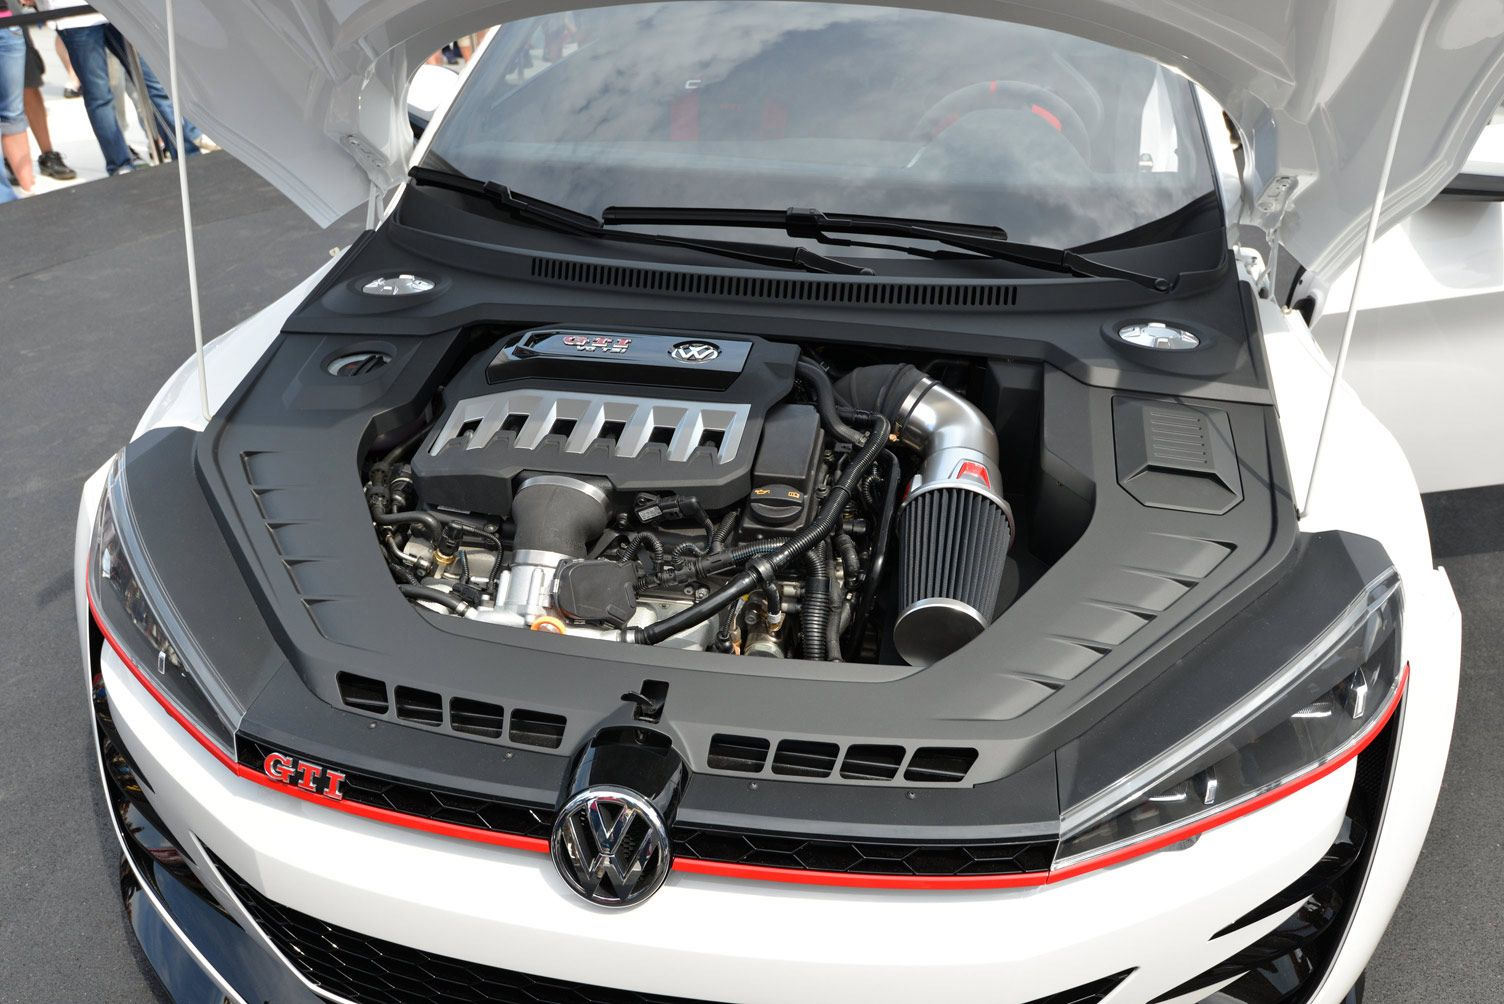 medium resolution of gti debut in w rthersee volkswagen showed us a new vr6 this 3 0l 24v six cylinder could possibly replace the current 3 6l seen in such models like the